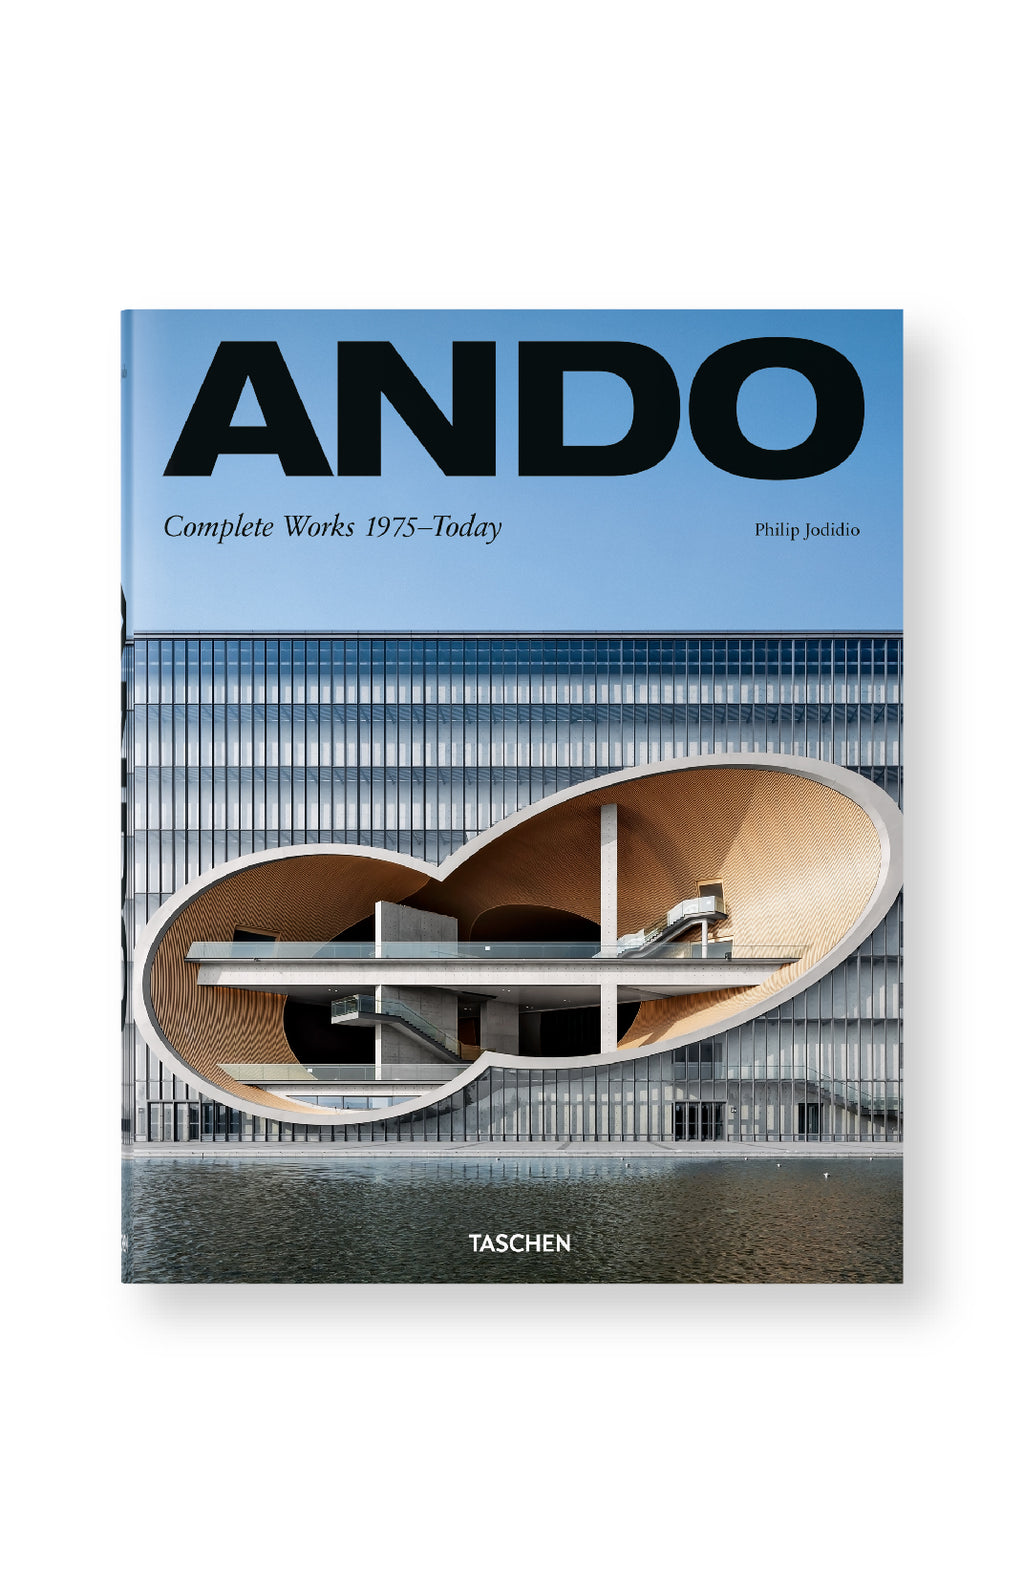 Ando: Complete Works 1975 - Today.